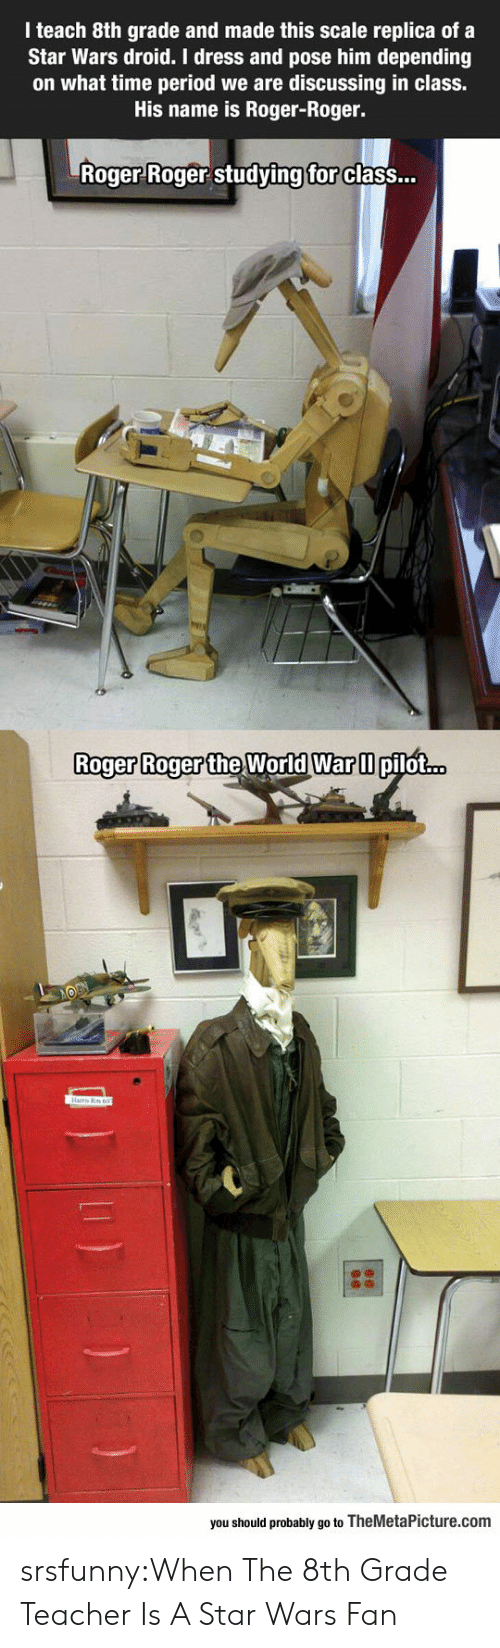 droid: I teach 8th grade and made this scale replica of a  Star Wars droid. I dress and pose him depending  on what time period we are discussing in class.  His name is Roger-Roger.  Roger Roger studving  for  class...  Roger Roger the World Warm  Roger Roger the World War ll pilot...  you should probably go to TheMetaPicture.com srsfunny:When The 8th Grade Teacher Is A Star Wars Fan